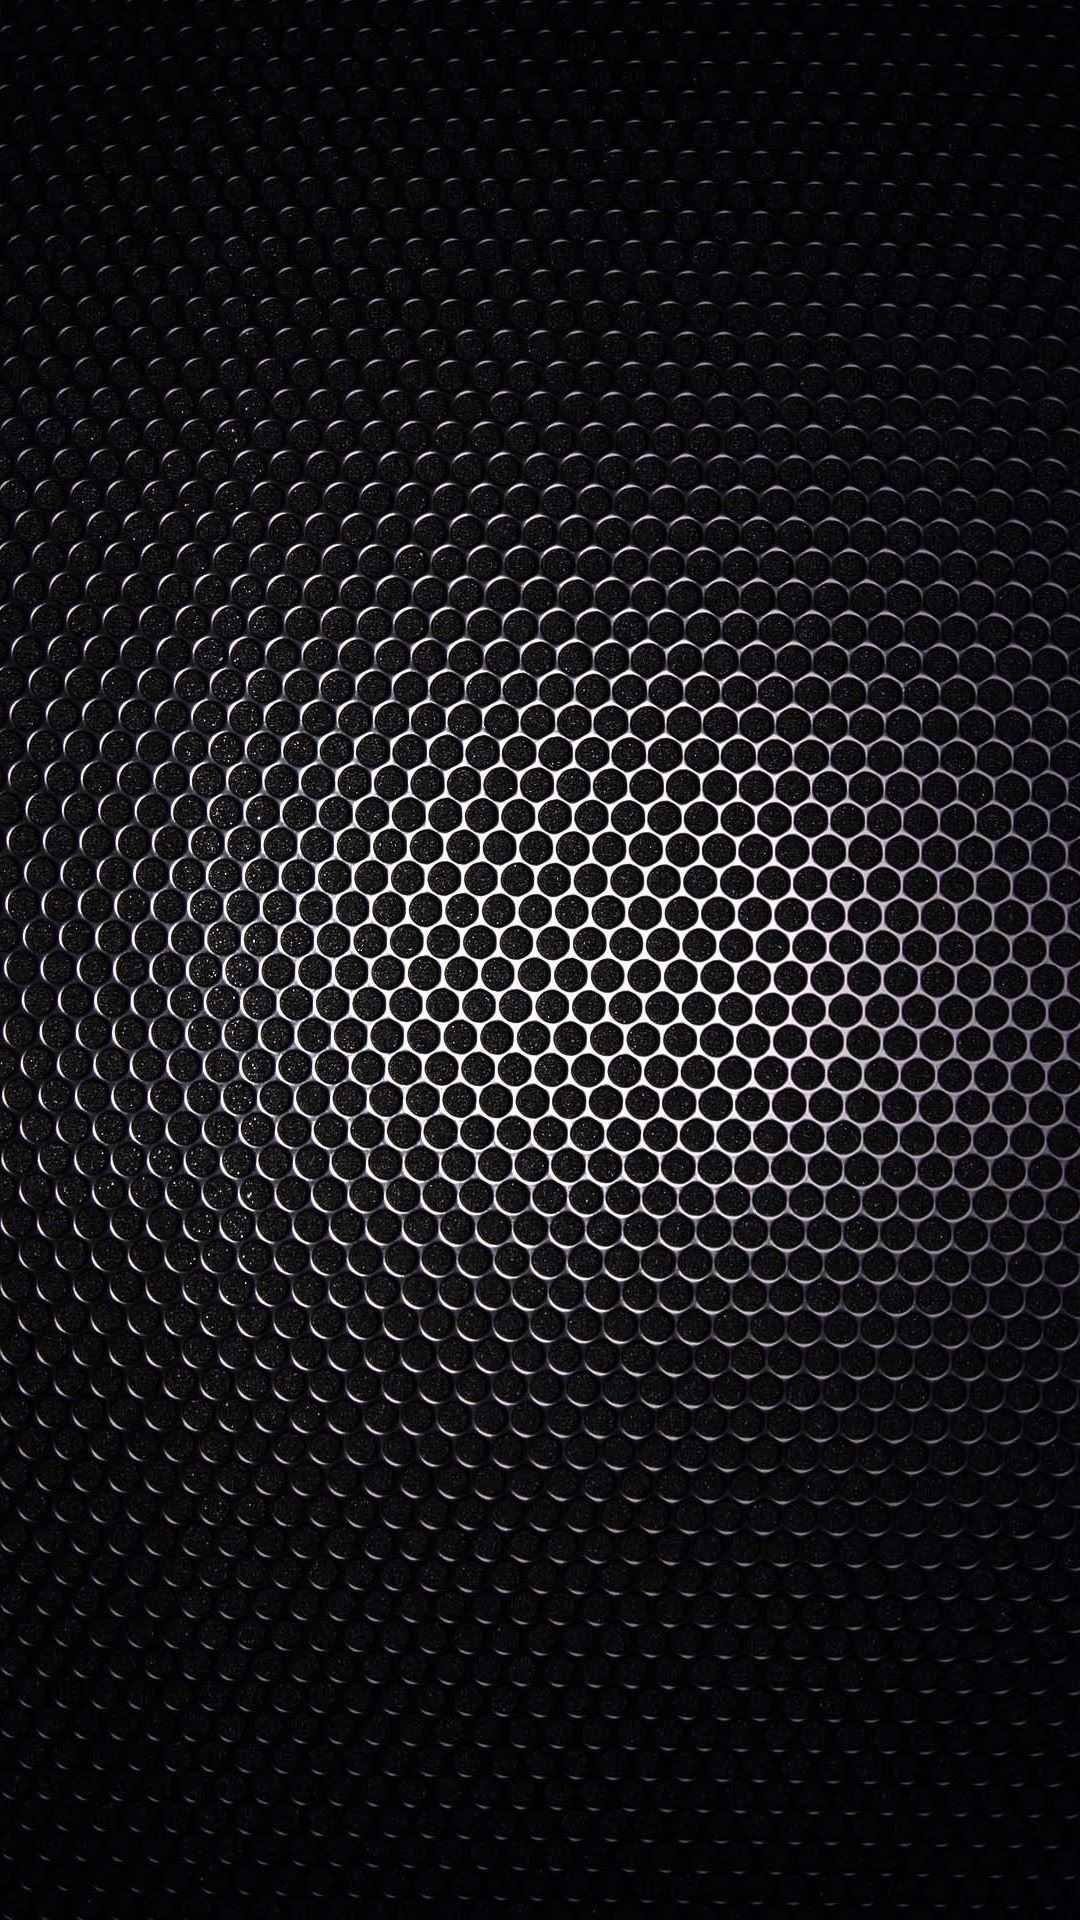 Black Wallpaper Hd For Android Mobile